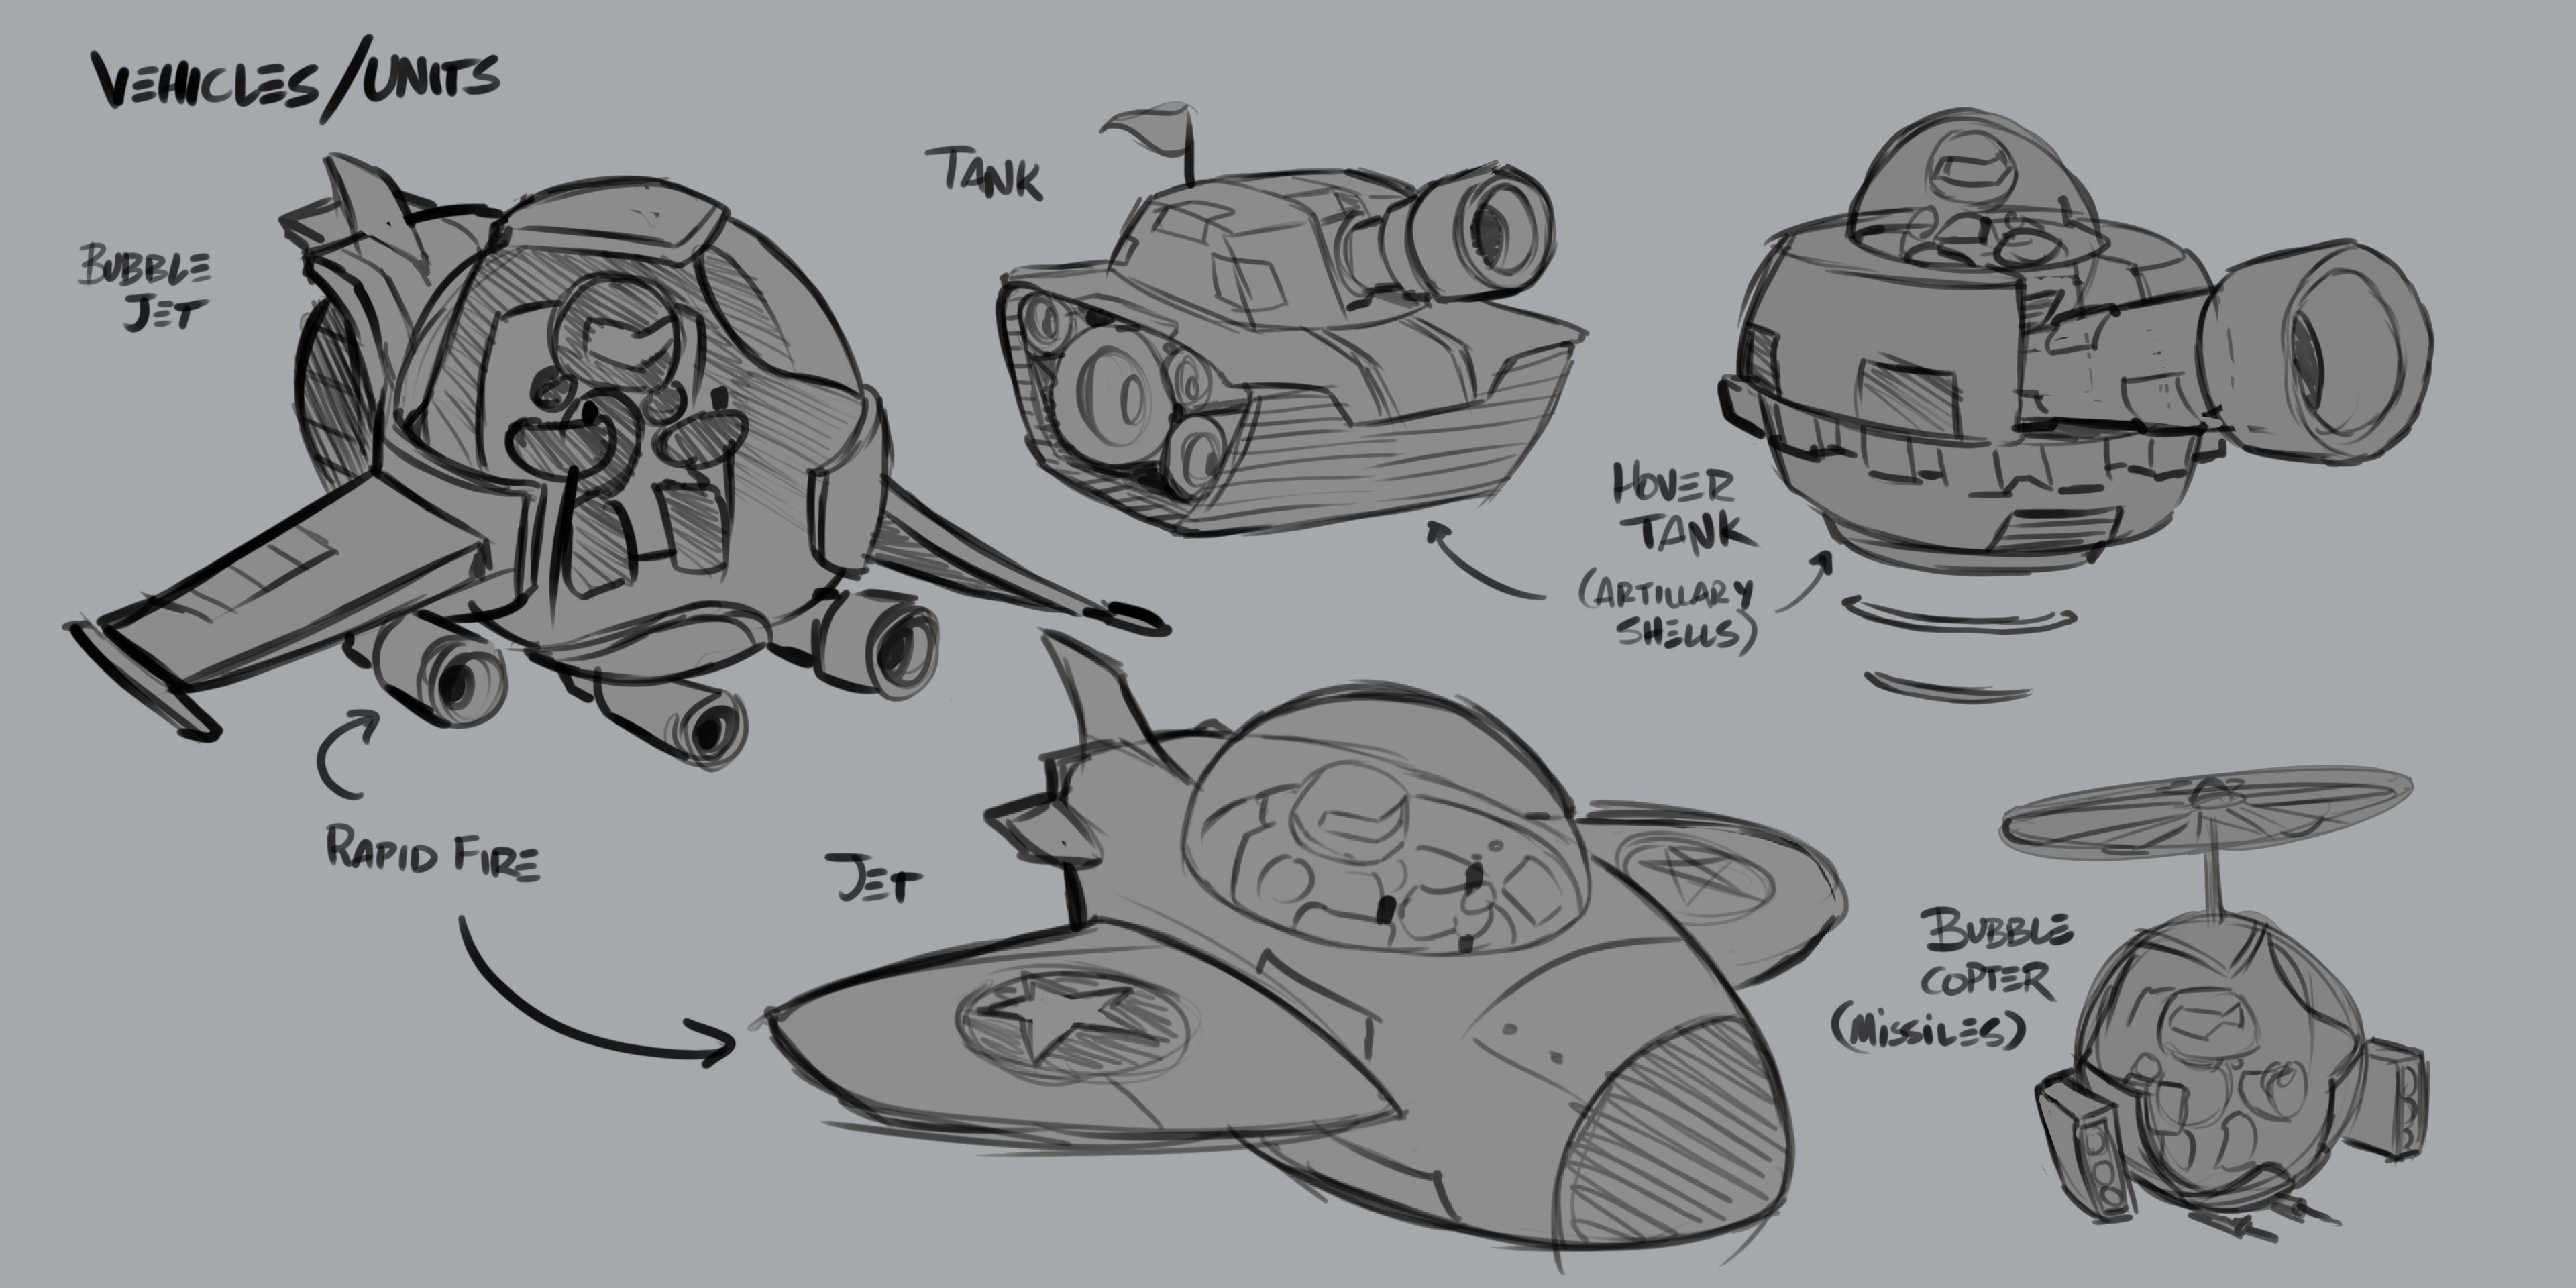 Early unit design exploration, deciding if thematically it would be best to depict units as more traditional military, or add in science fiction elements.